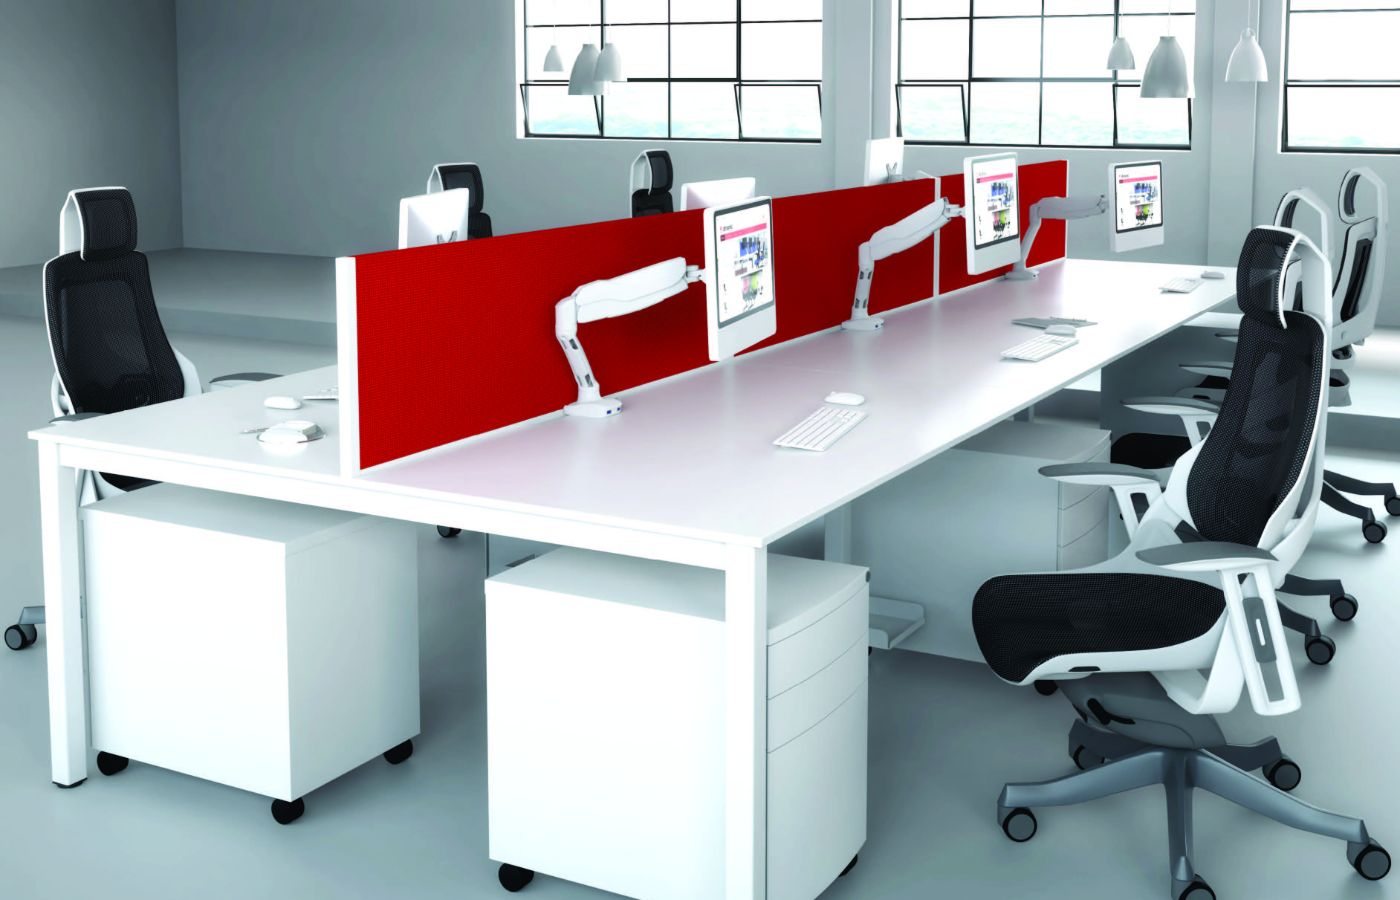 office and breakout with red dividers